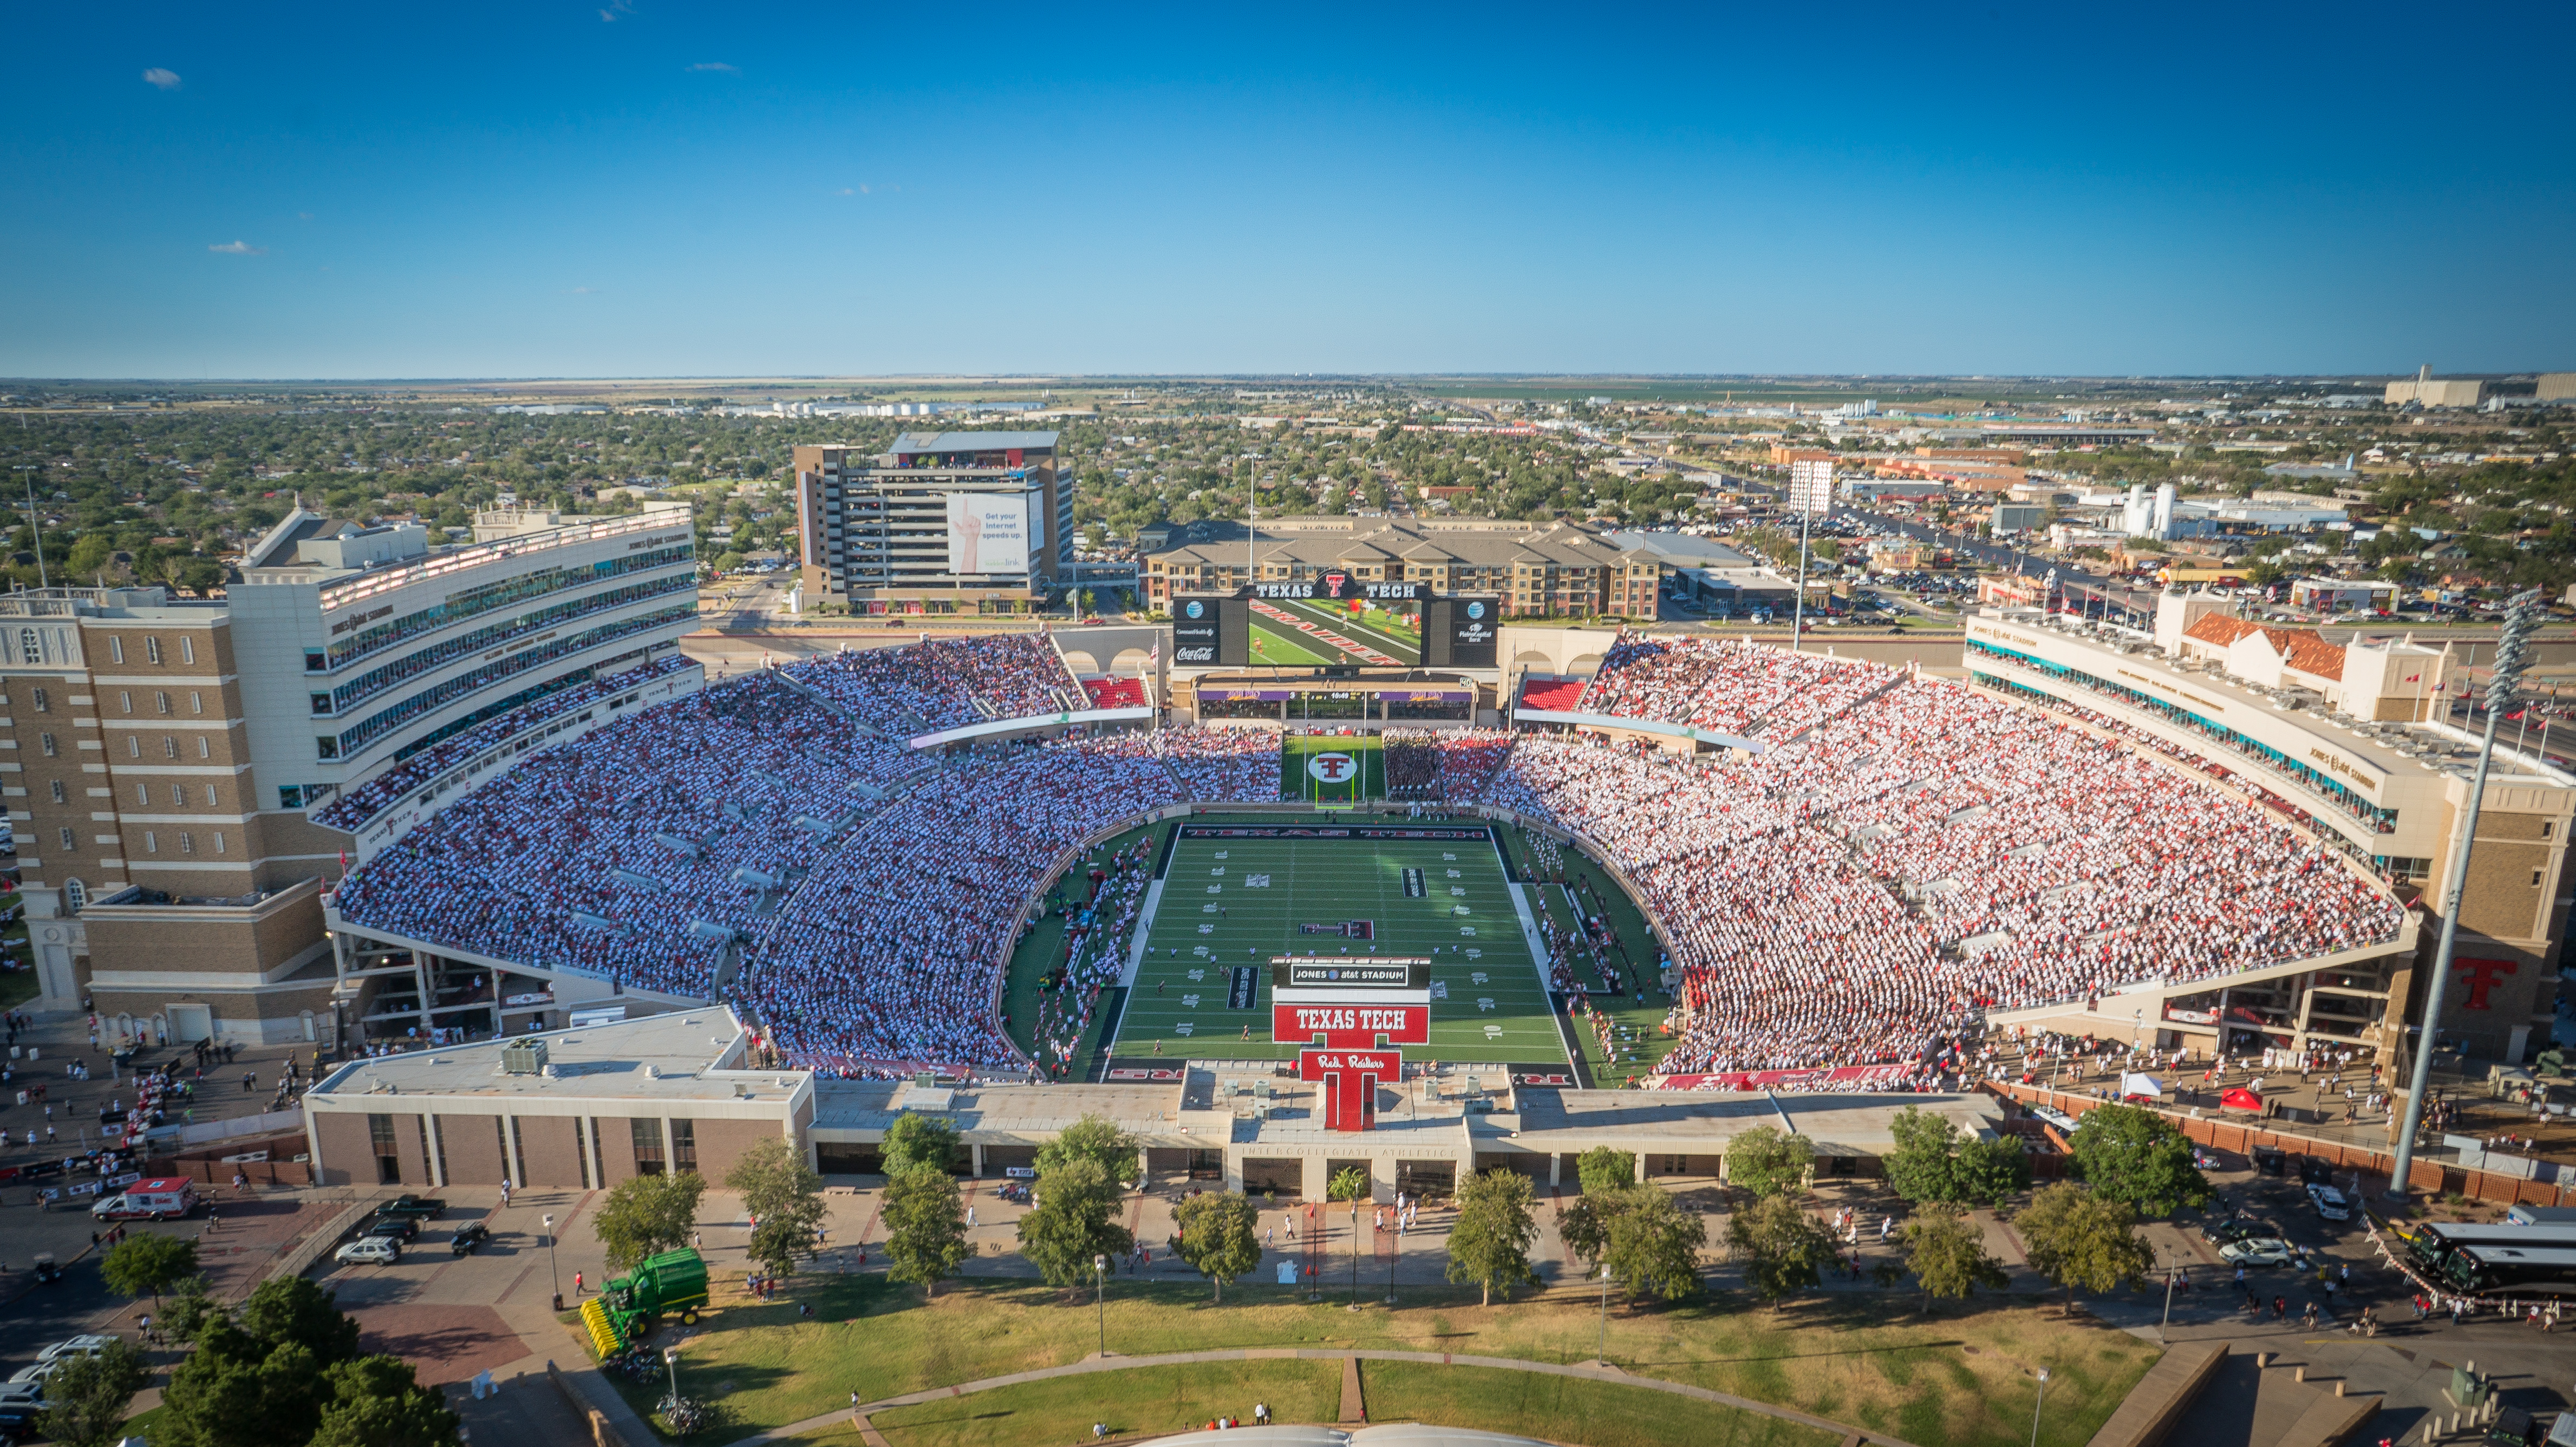 texas tech essays Texas tech university admissions essay prompt: discuss educational and career goals untitled: every year on the first day of school, several of my teachers pass out 'about me' surveys, asking for information such as my best and worst subjects.